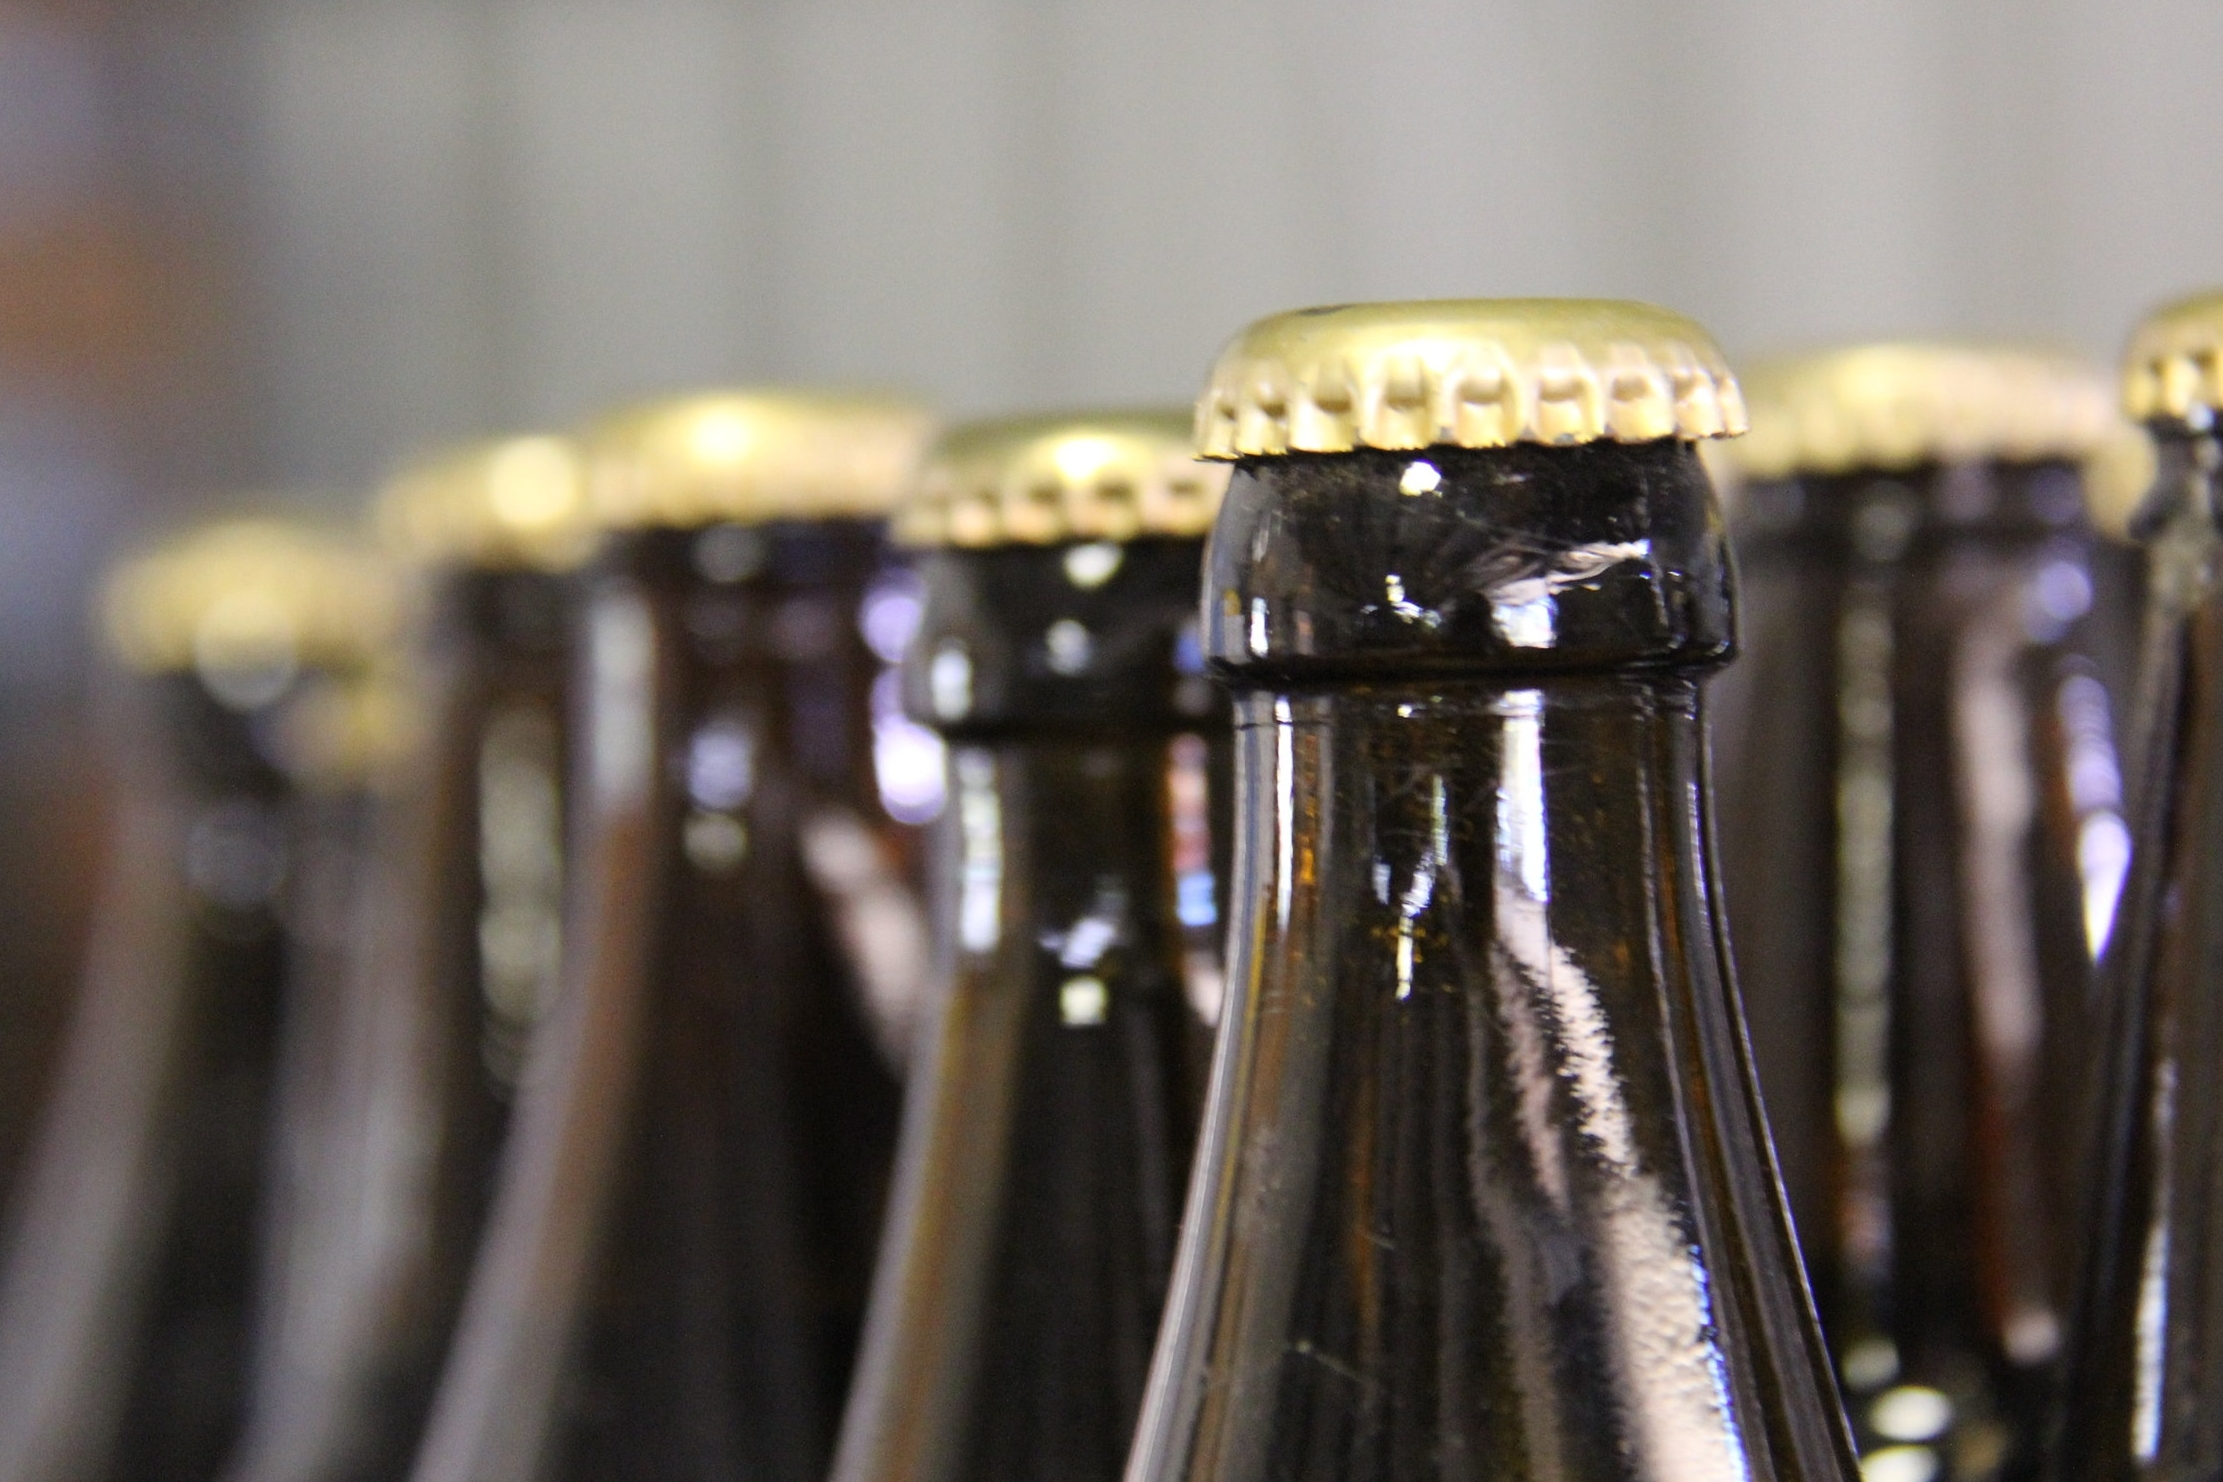 Maturing your homebrew can walk a delicate line.